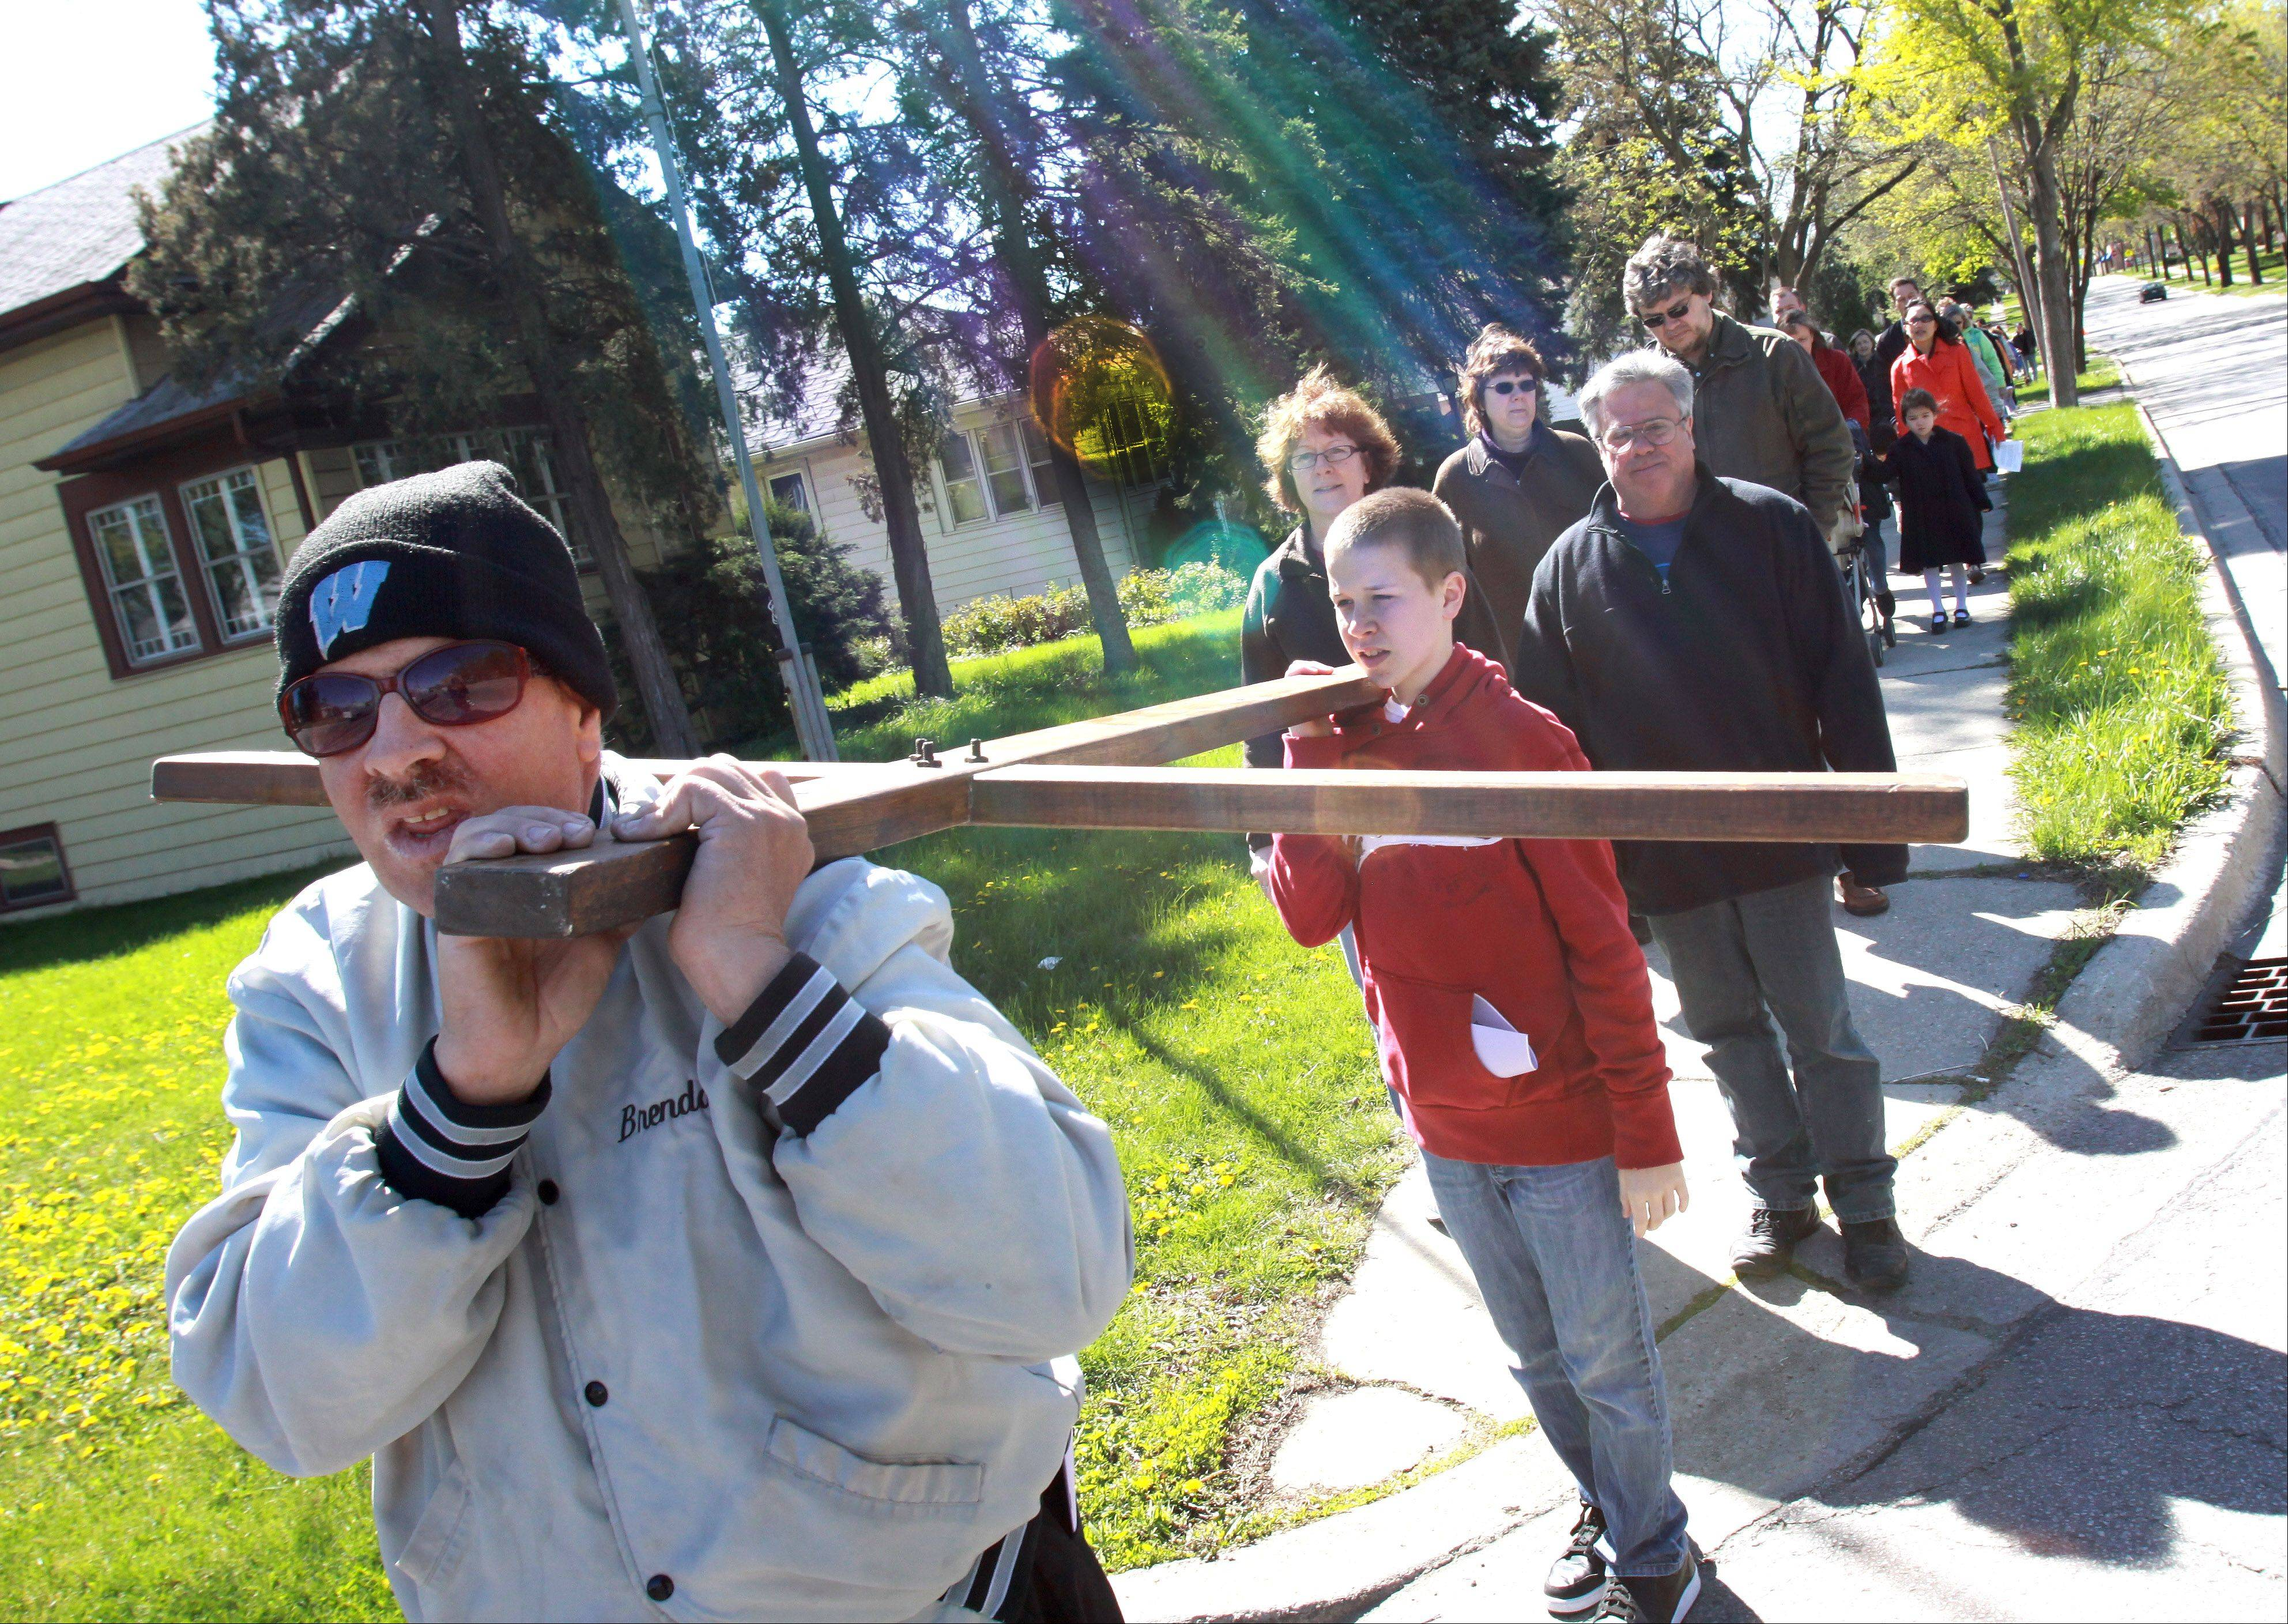 Brendan McArdle of Villa Park carries the cross with help from Ethan Wallace during St. Alexander Church's Good Friday Walk in Villa Park. This is the 20th year the church has held the walk.